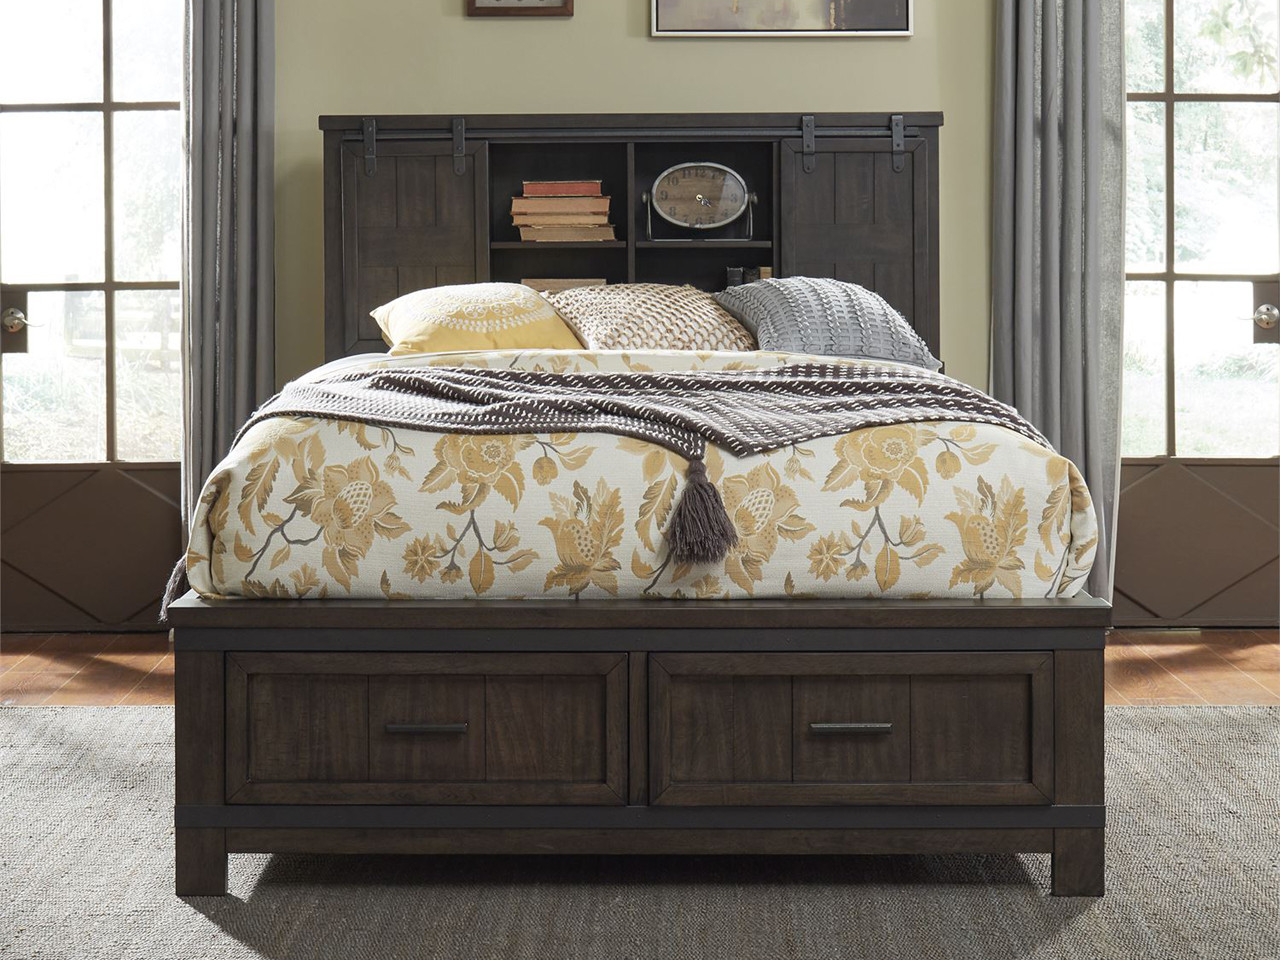 Farmhouse Bookcase Storage Bed Queen Bedroom Source